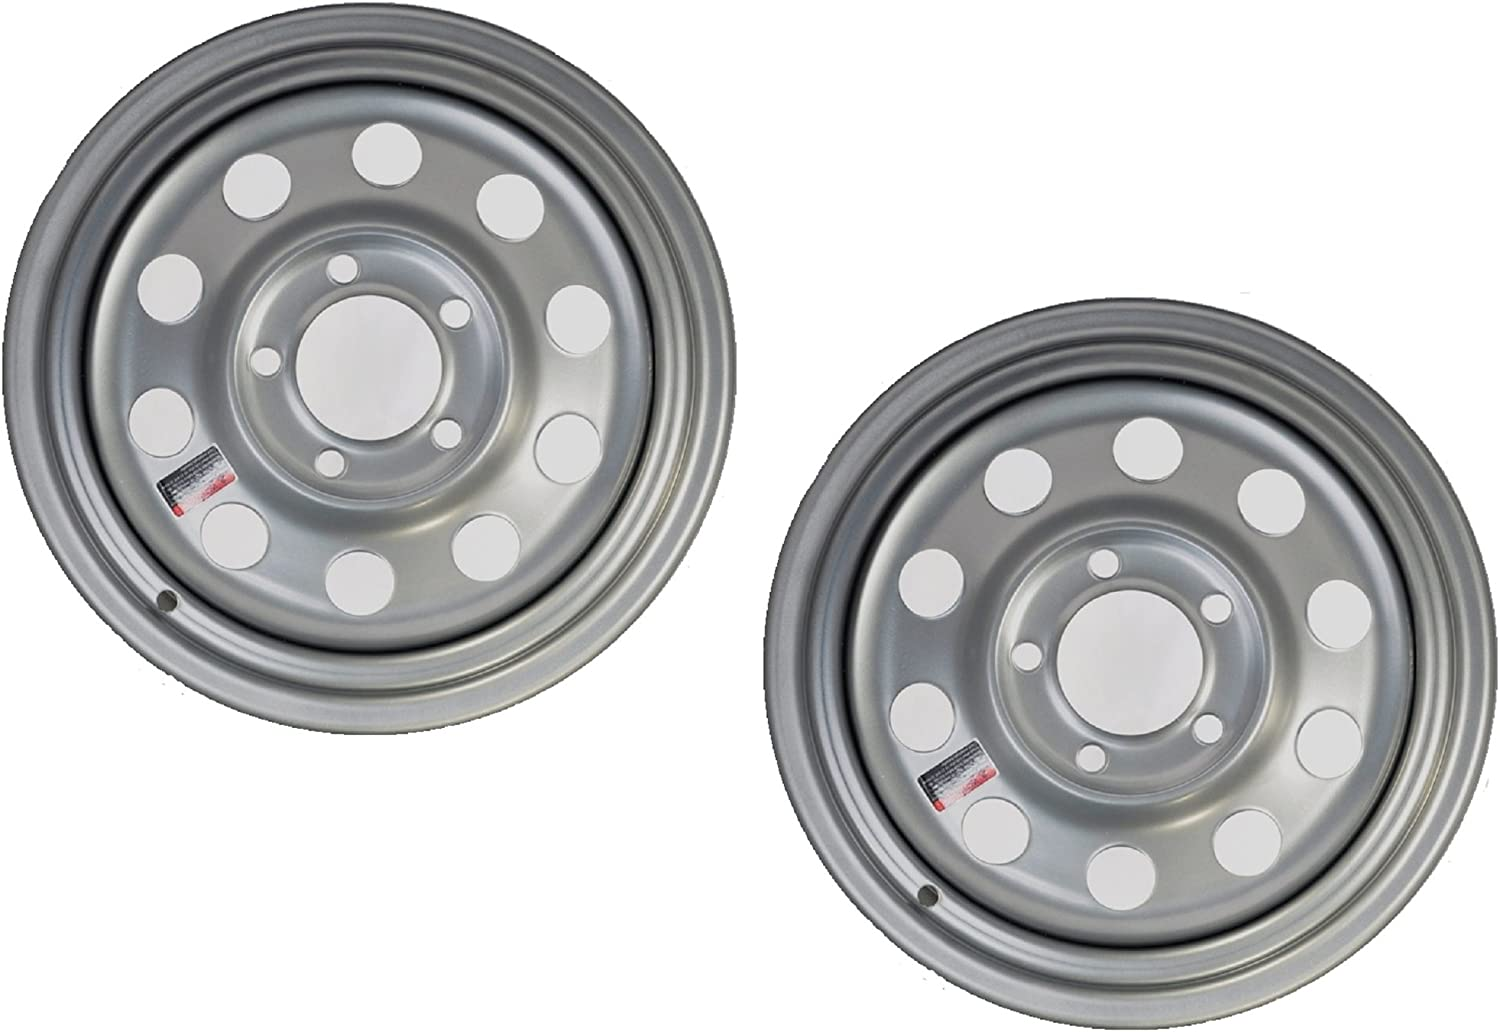 2-Pack Trailer Wheel Silver Rims 15 Houston 2021new shipping free shipping Mall x Style 4 On 5 Modular Lug